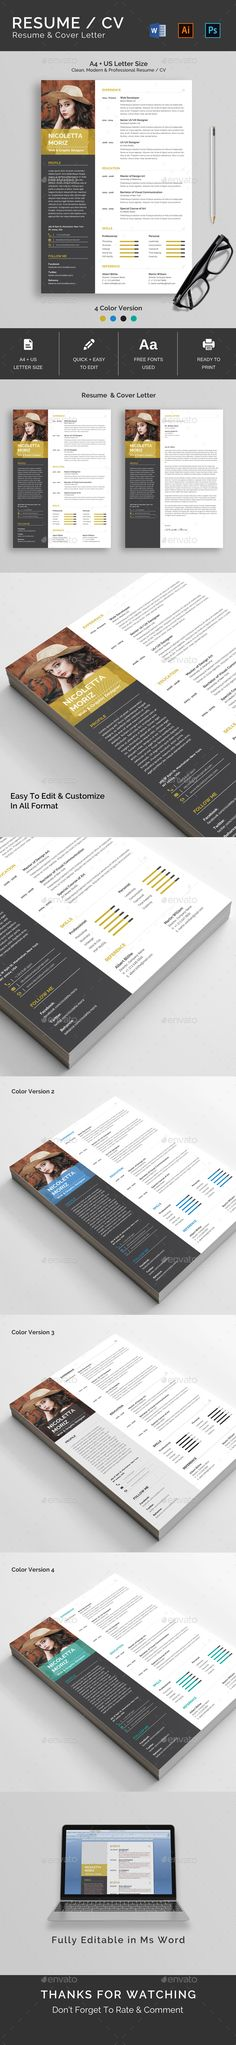 Resume 28 best Resume Templates images on